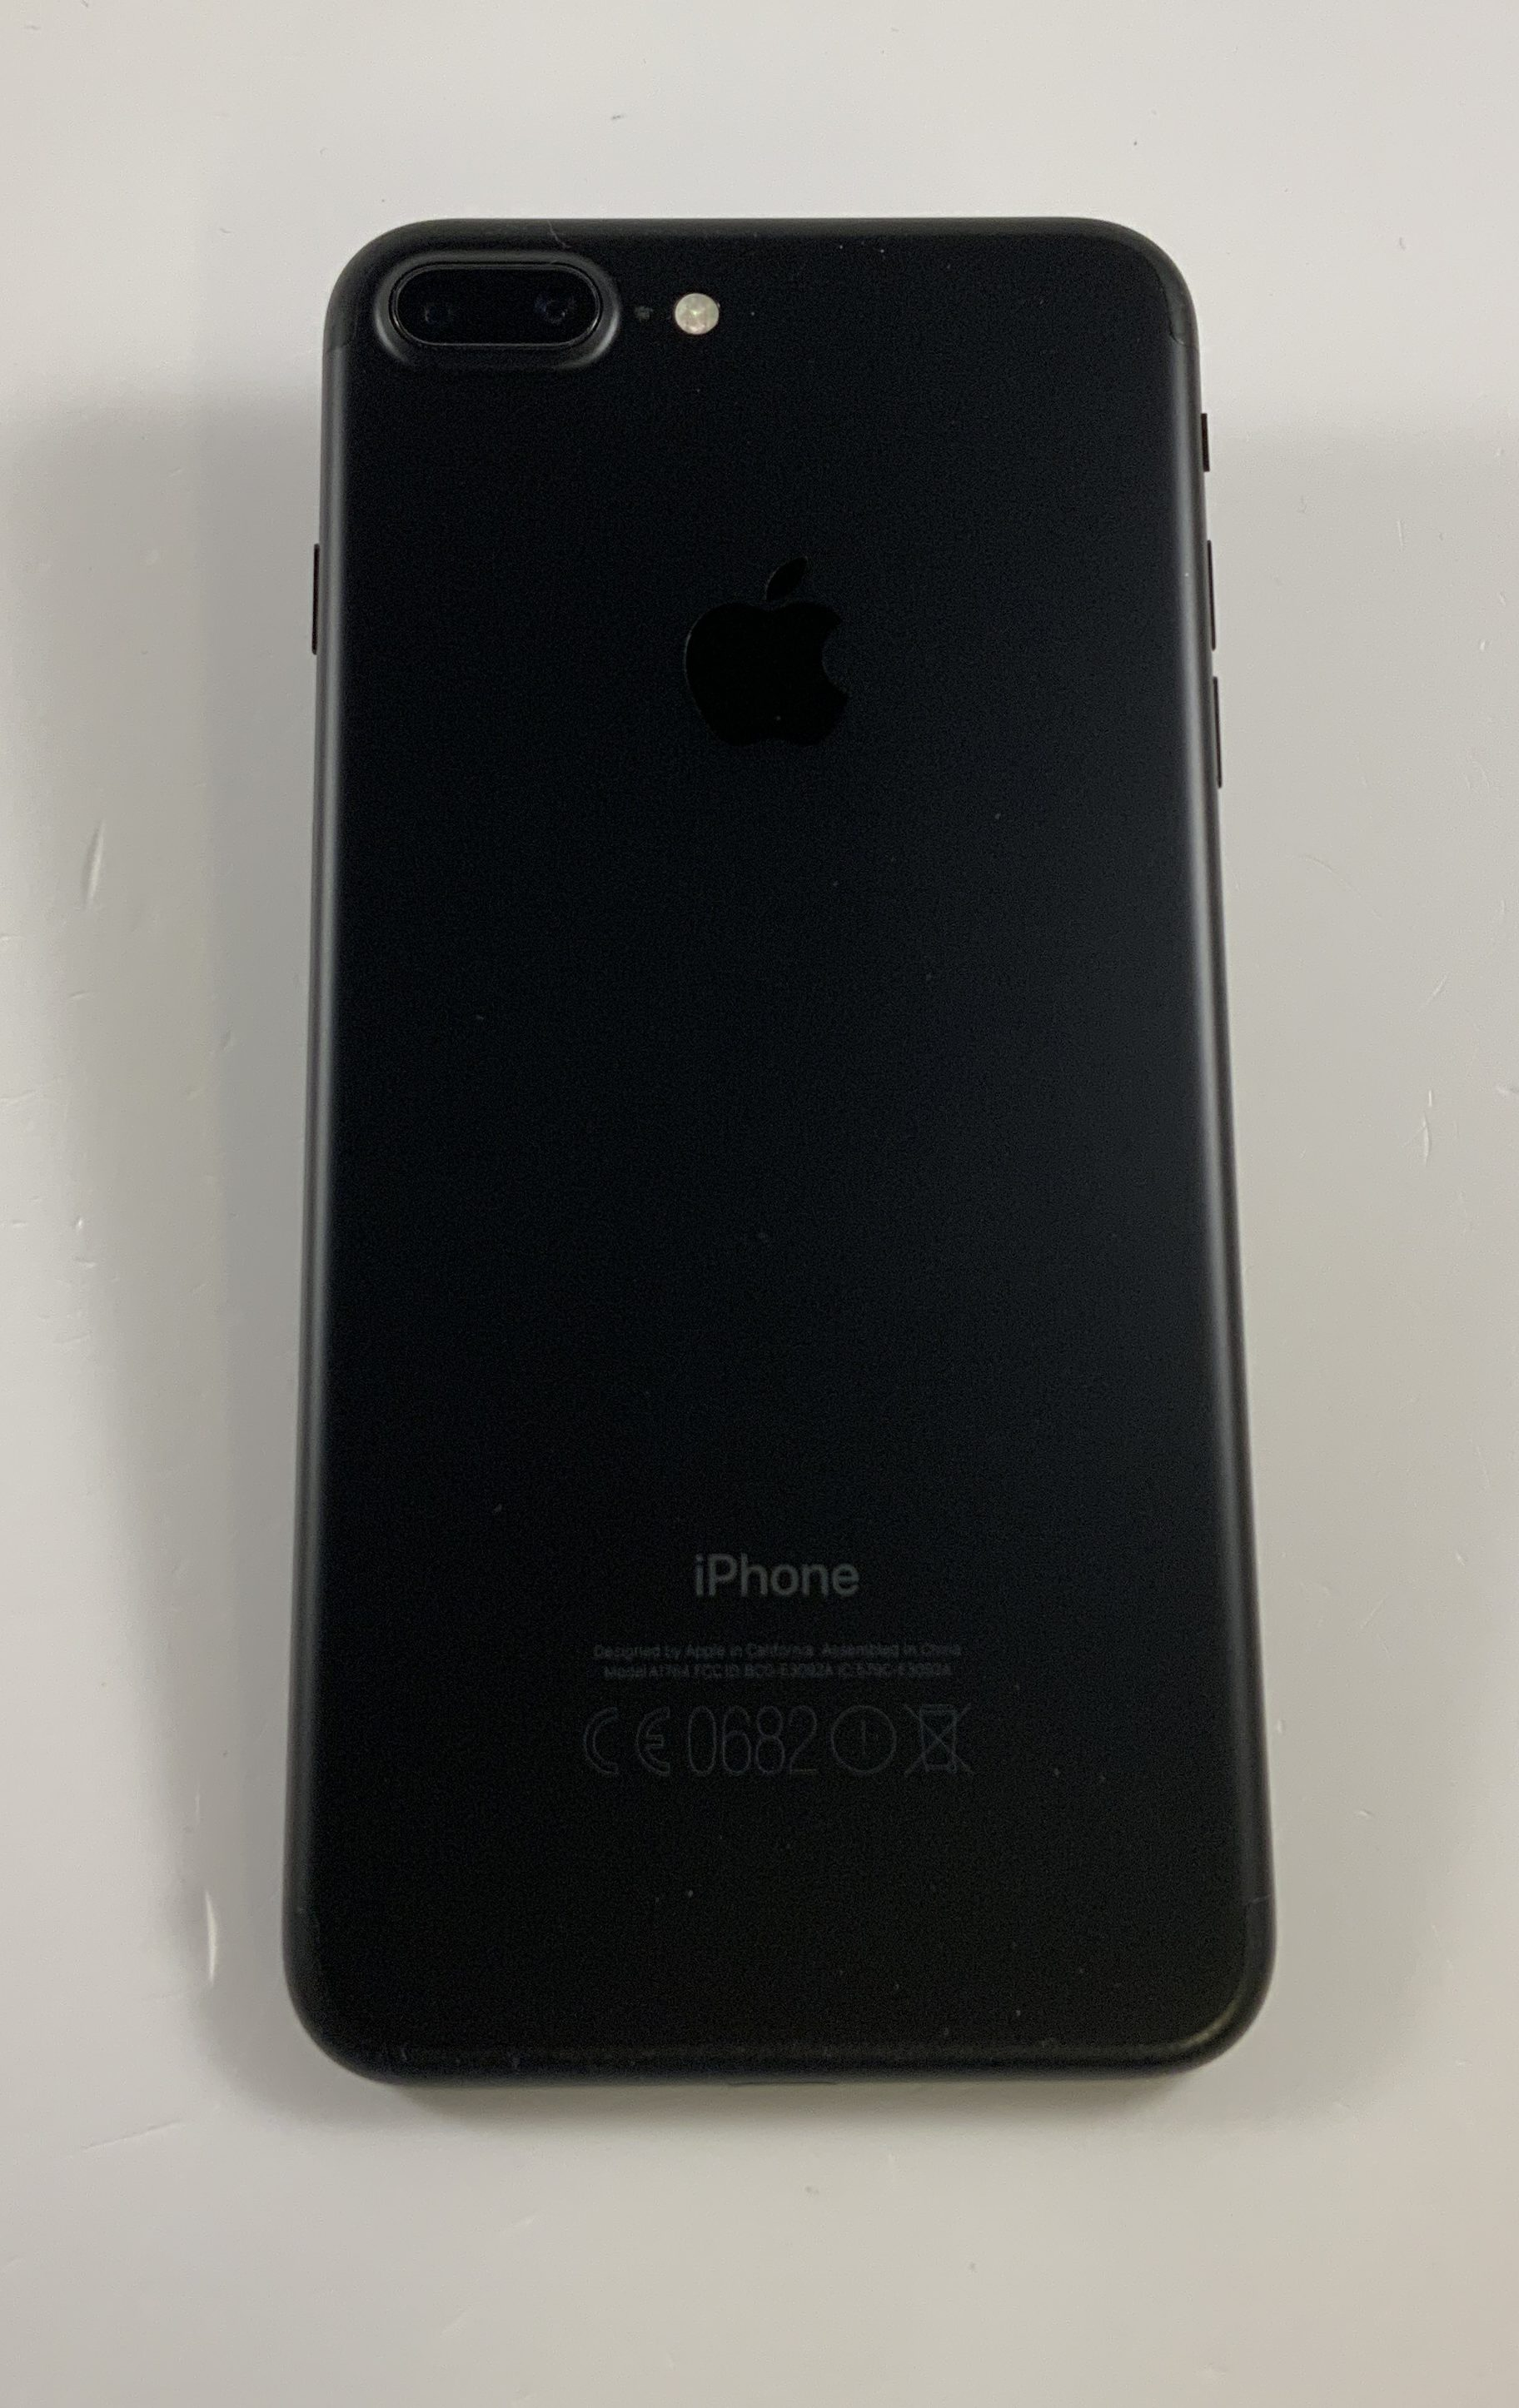 iPhone 7 Plus 32GB, 32GB, Black, Afbeelding 2